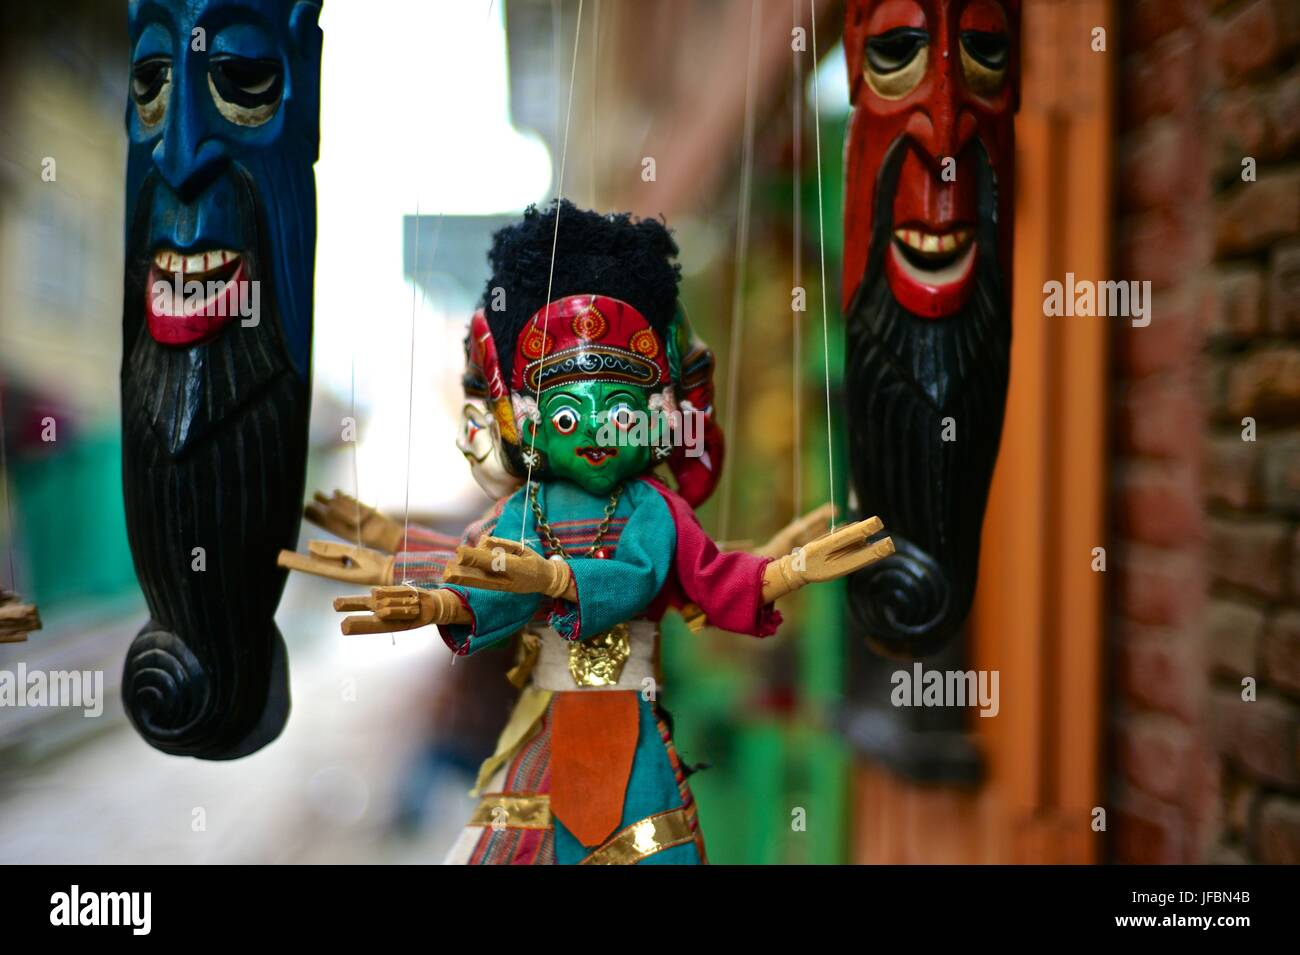 A handmade Nepalese puppet. - Stock Image